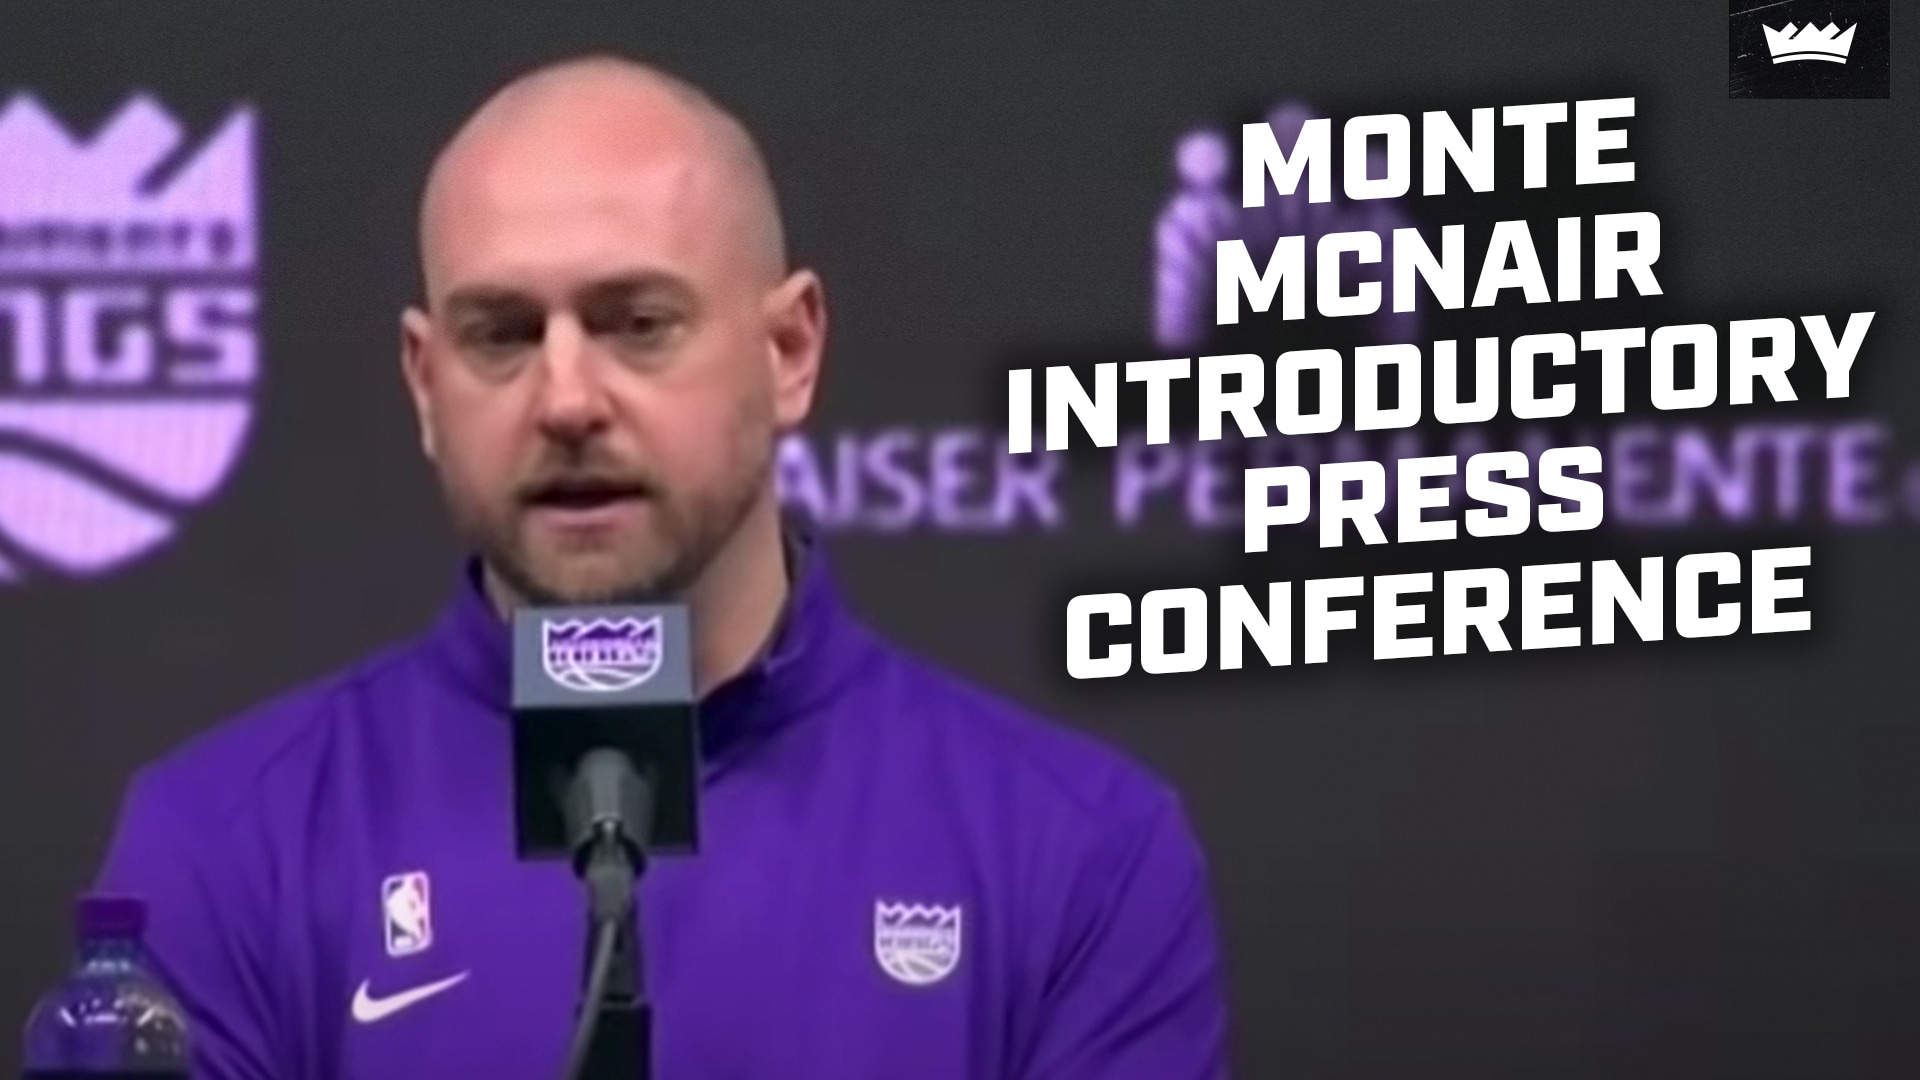 Monte McNair Introductory Press Conference